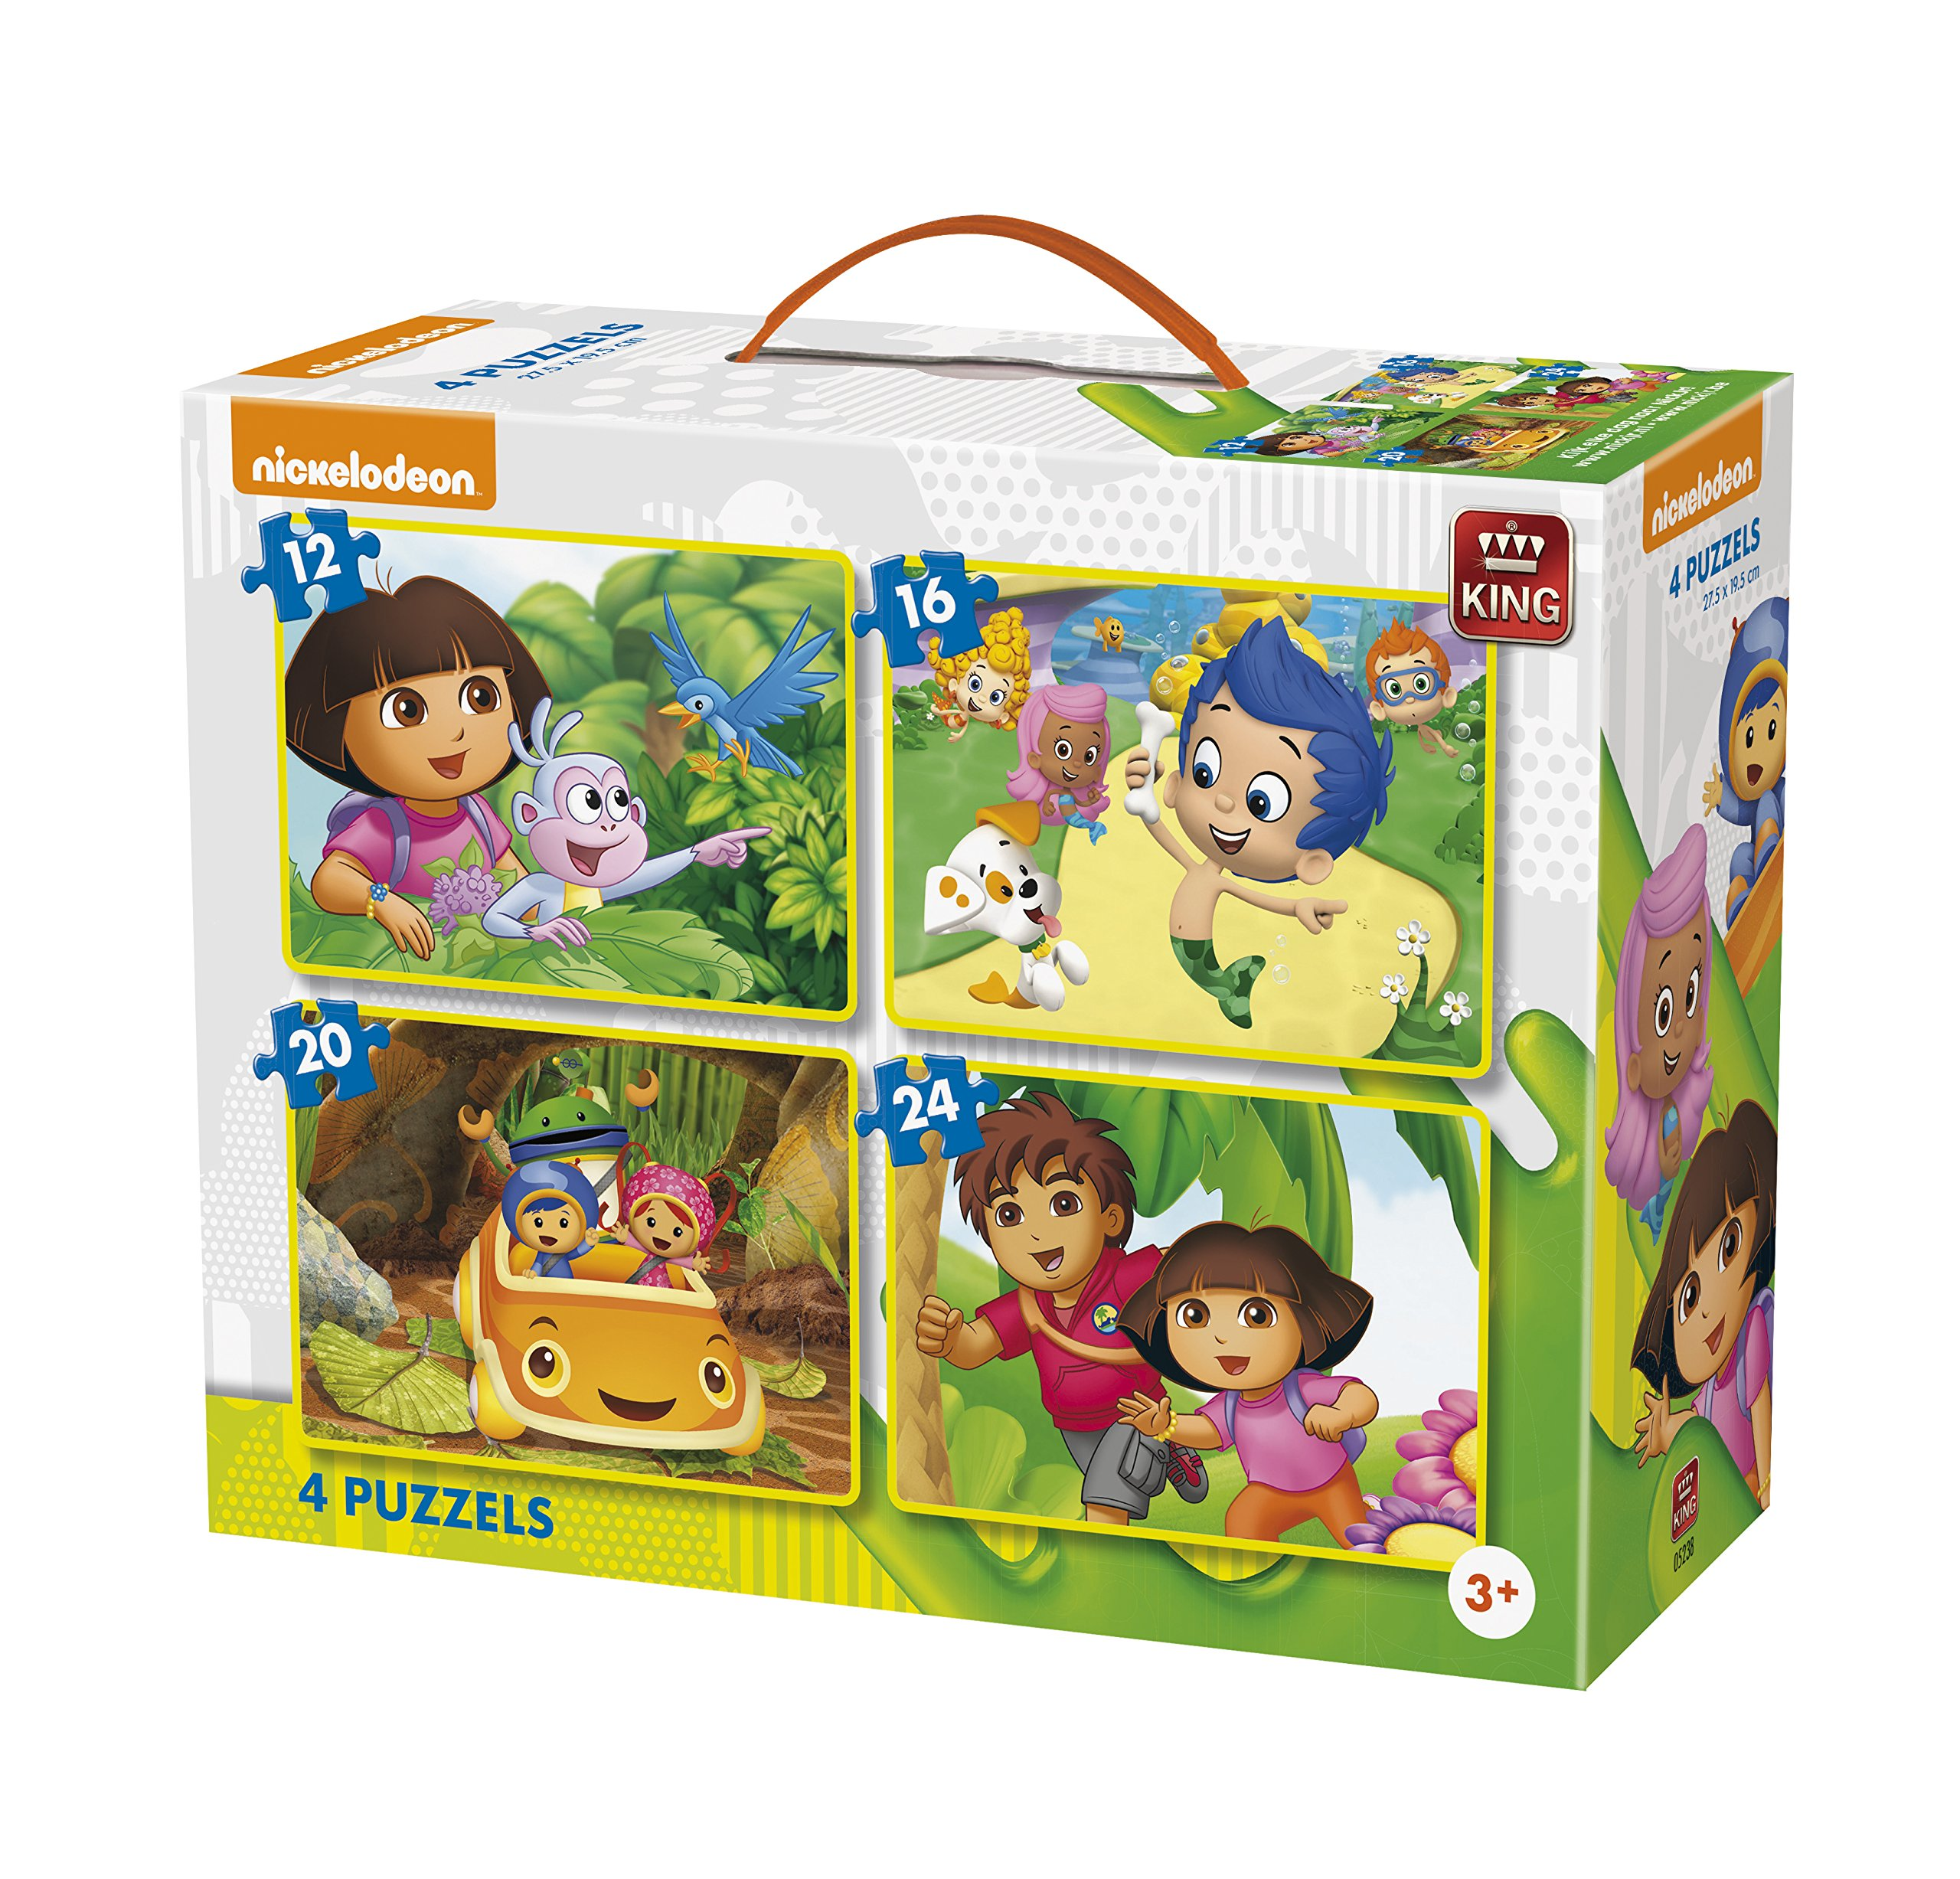 King Nickelodeon 4in1 Puzzle Puzzle – Rompecabezas (Puzzle Rompecabezas, Dibujos, Niños, Nickelodeon, Dora, Diego…